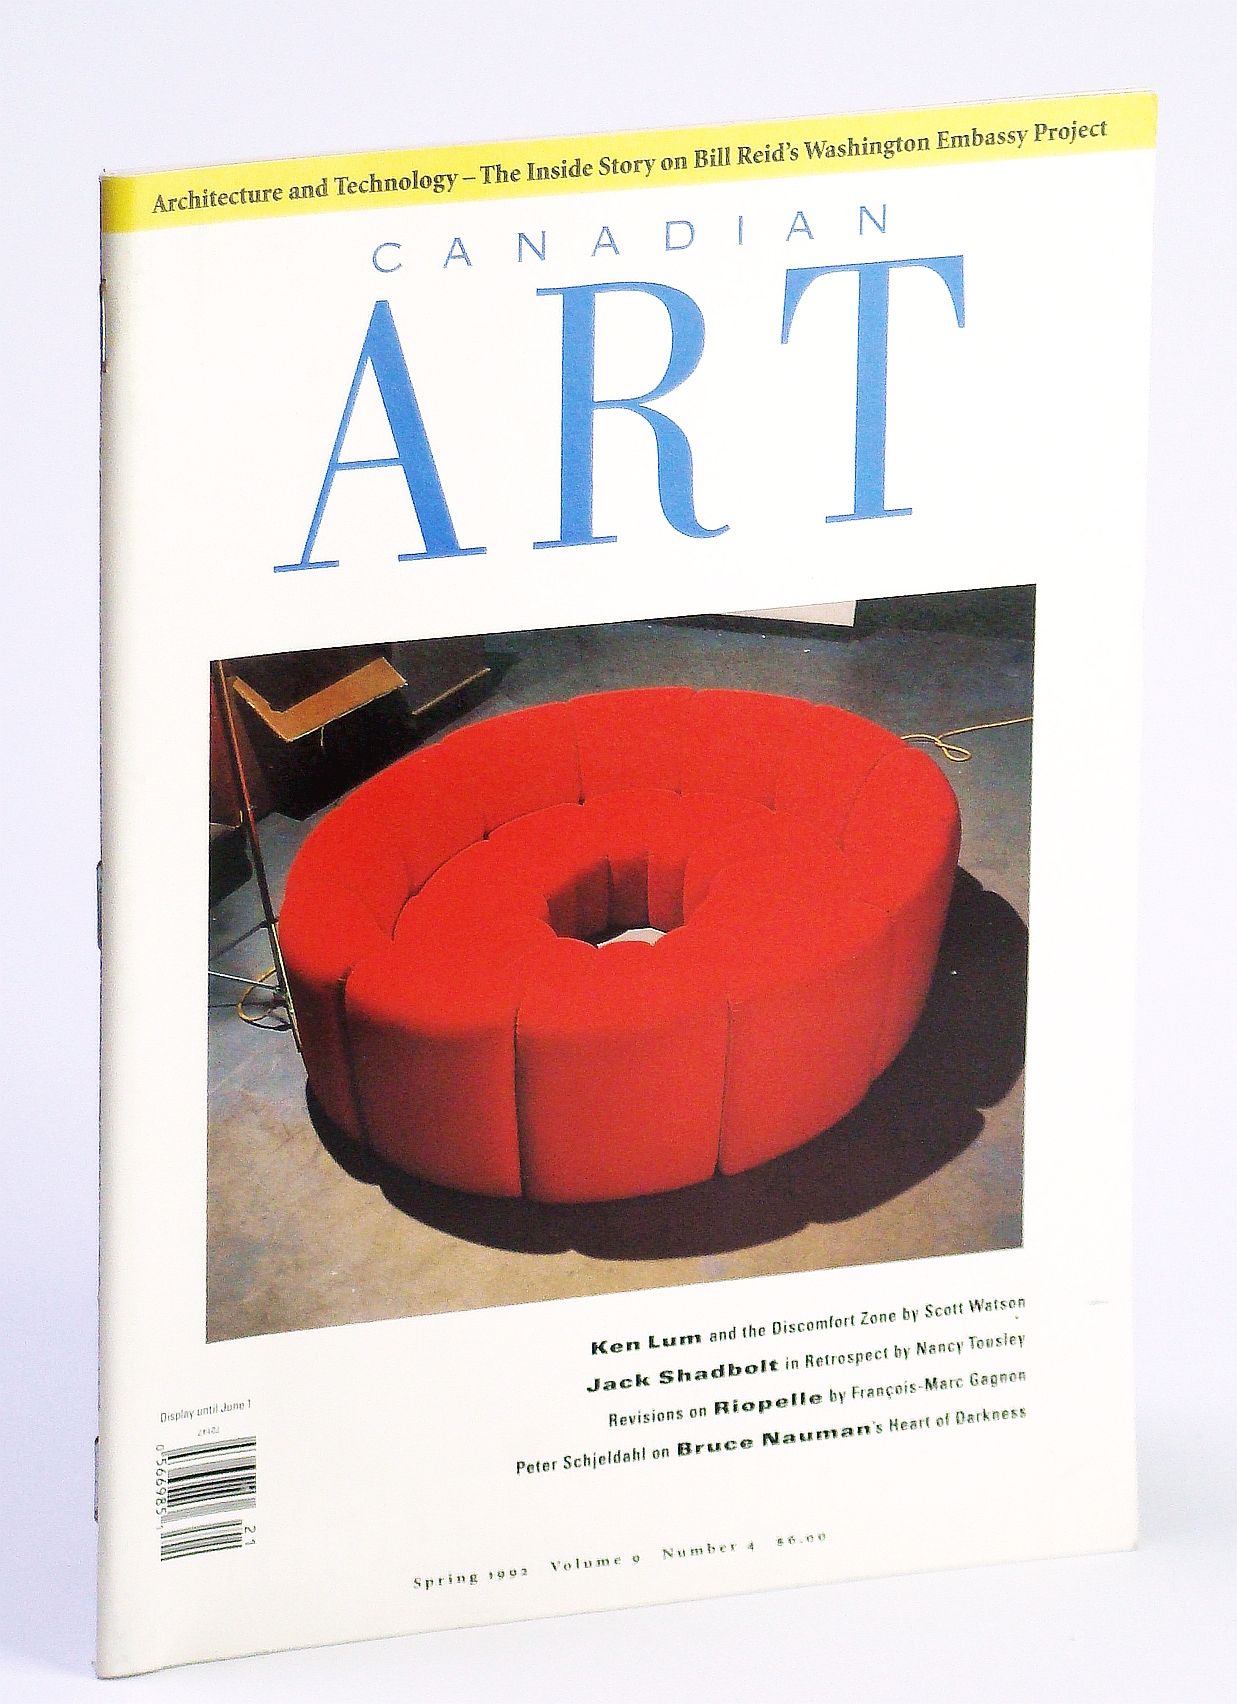 Image for Canadian Art Magazine, Spring 1992, Volume 9, Number 4: The Inside Story on Bill Reid's Washington Embassy Project